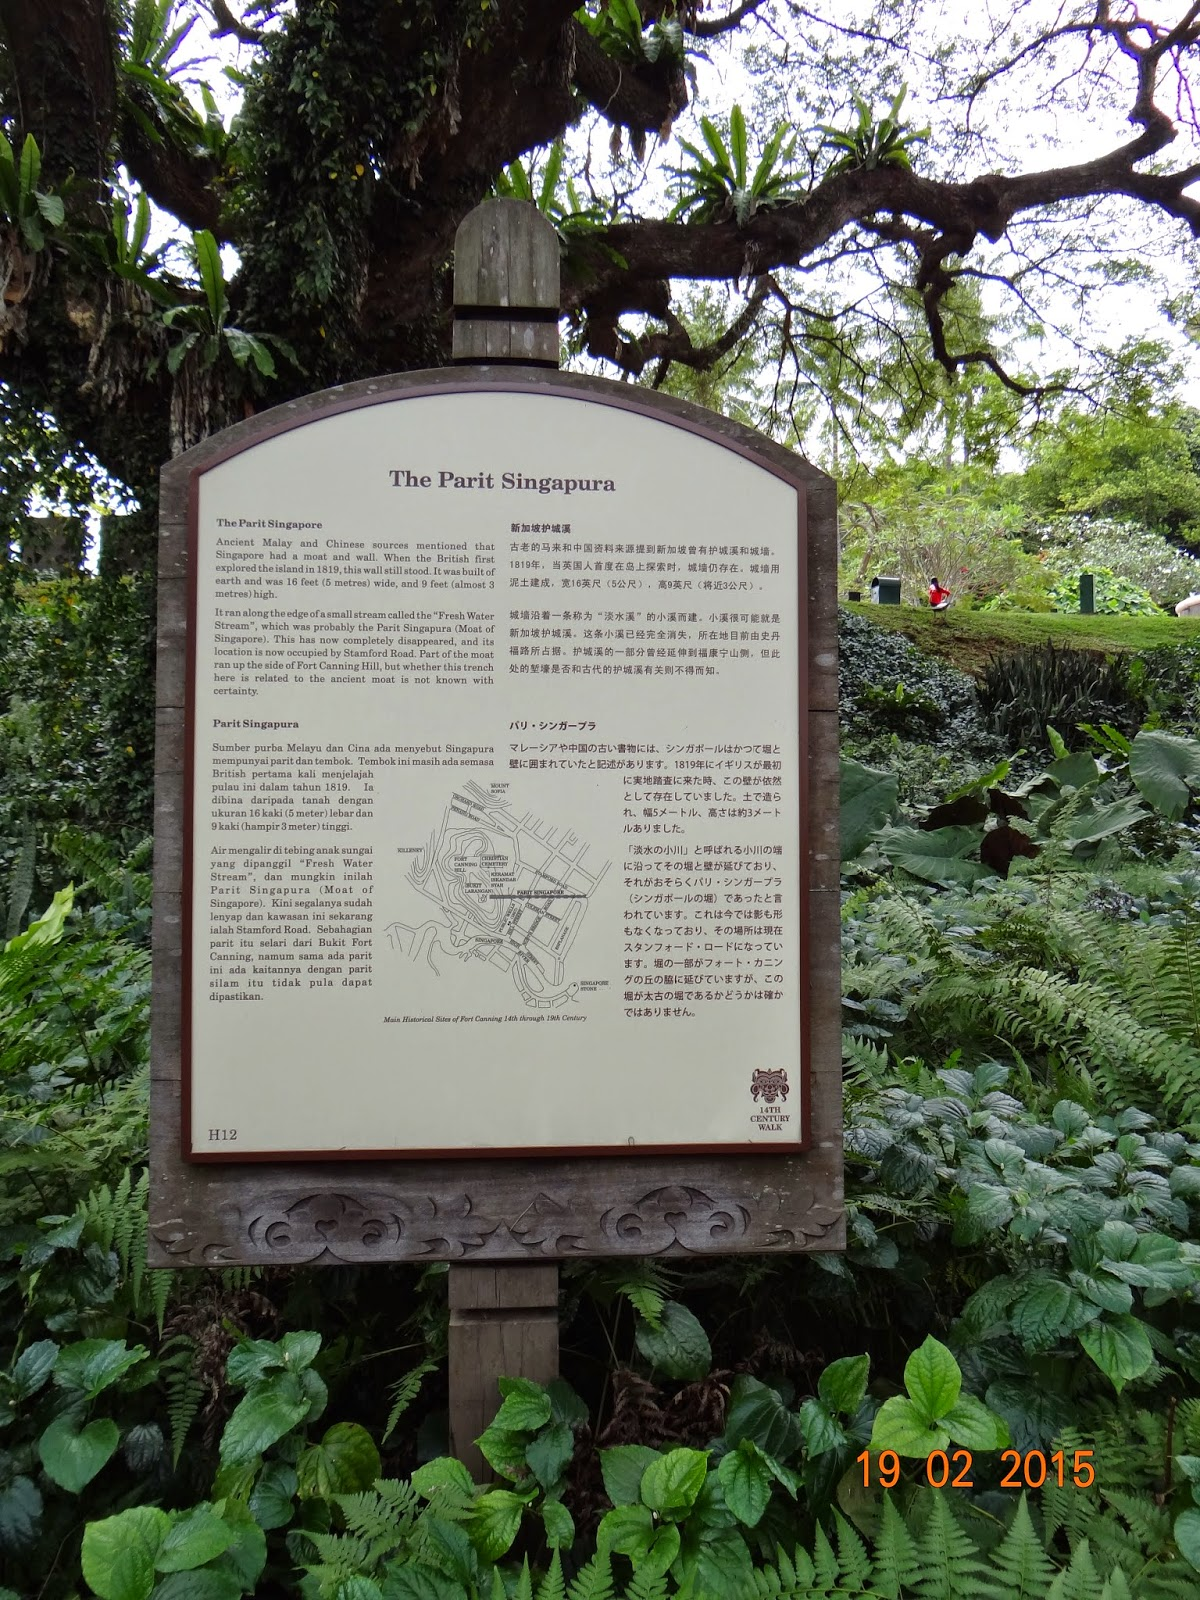 Rajeevs World Bukit Larangan A Storyboard Of Ancient Singapura Garden By The Bay Anak Parit Was An Moat Discovered Malays And Colonial British When Modern Singapore Inhabited Nearly 200 Years Back